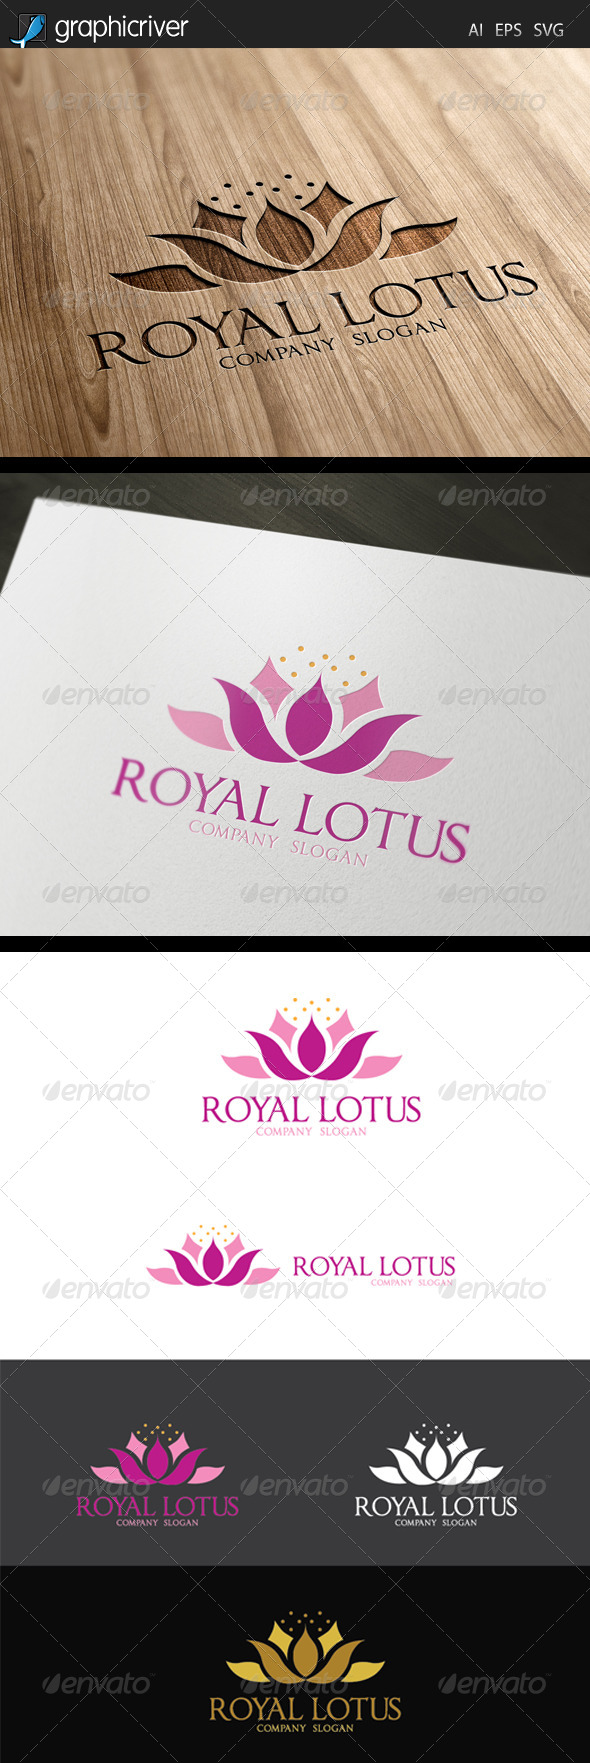 GraphicRiver Loyal Lotus Logo 7609791